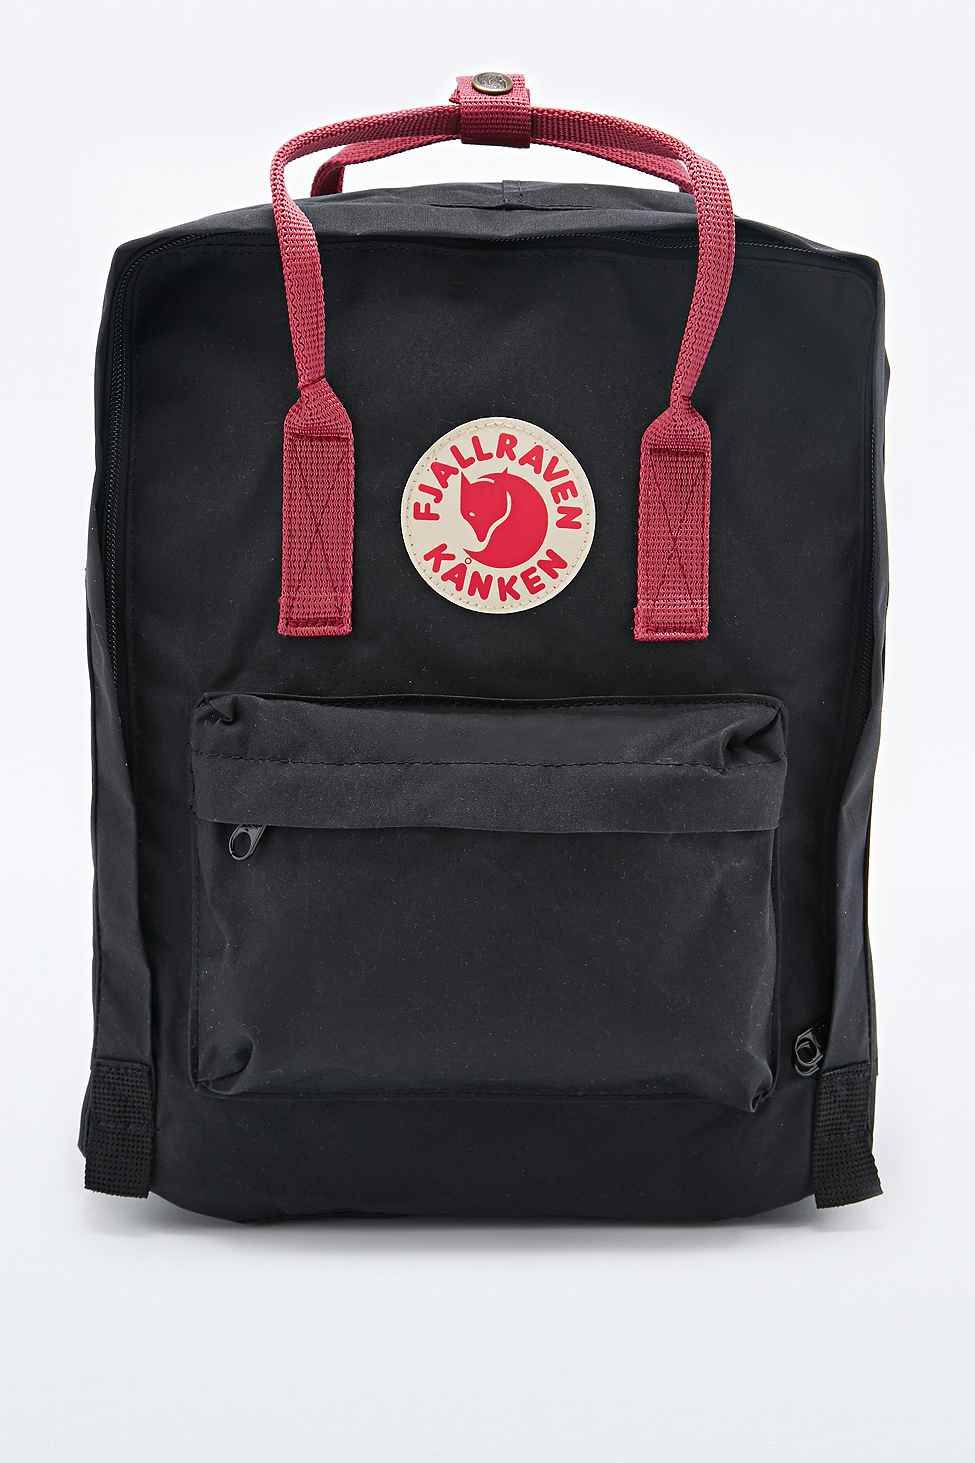 16b28c6966acdb Fjallraven Kanken Classic Backpack in Black and Oxblood